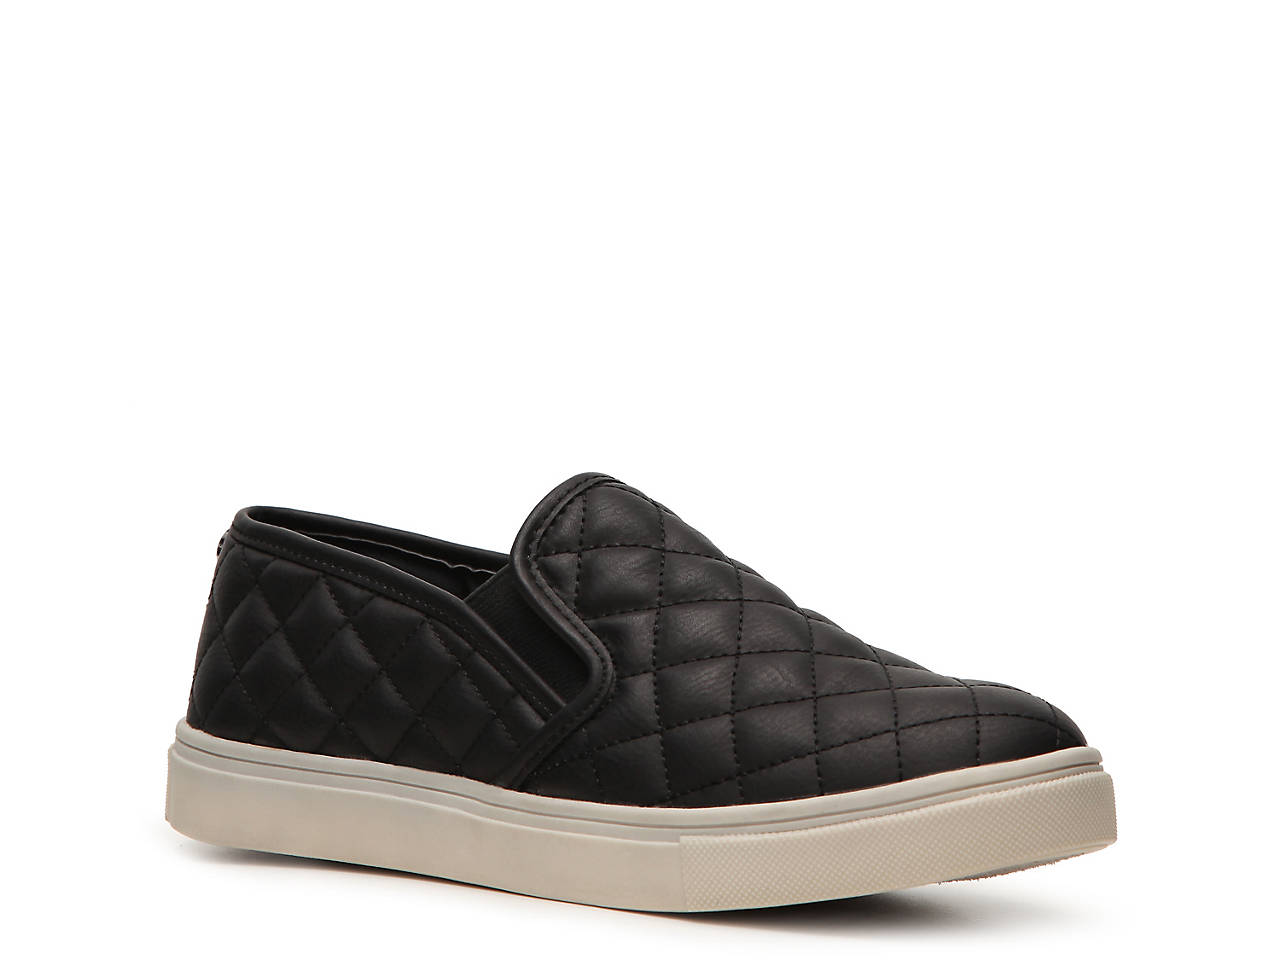 46181405f899 Steve Madden Ecentrcq Slip-On Sneaker Women's Shoes | DSW